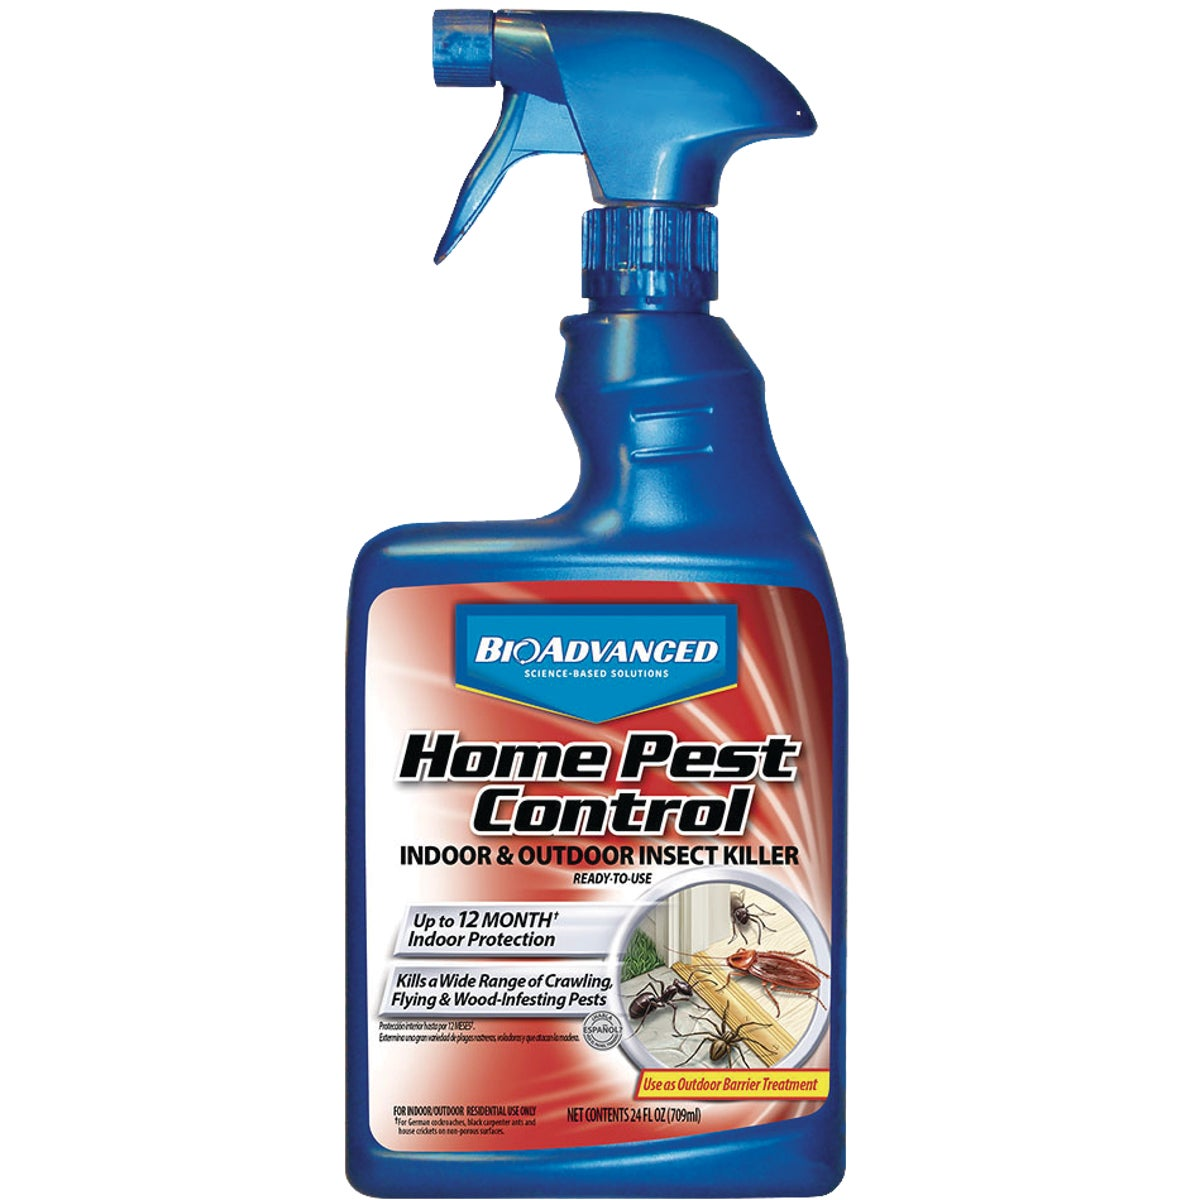 24OZ HOME PEST CONTROL - 502790A by Bayer Advanced Llc